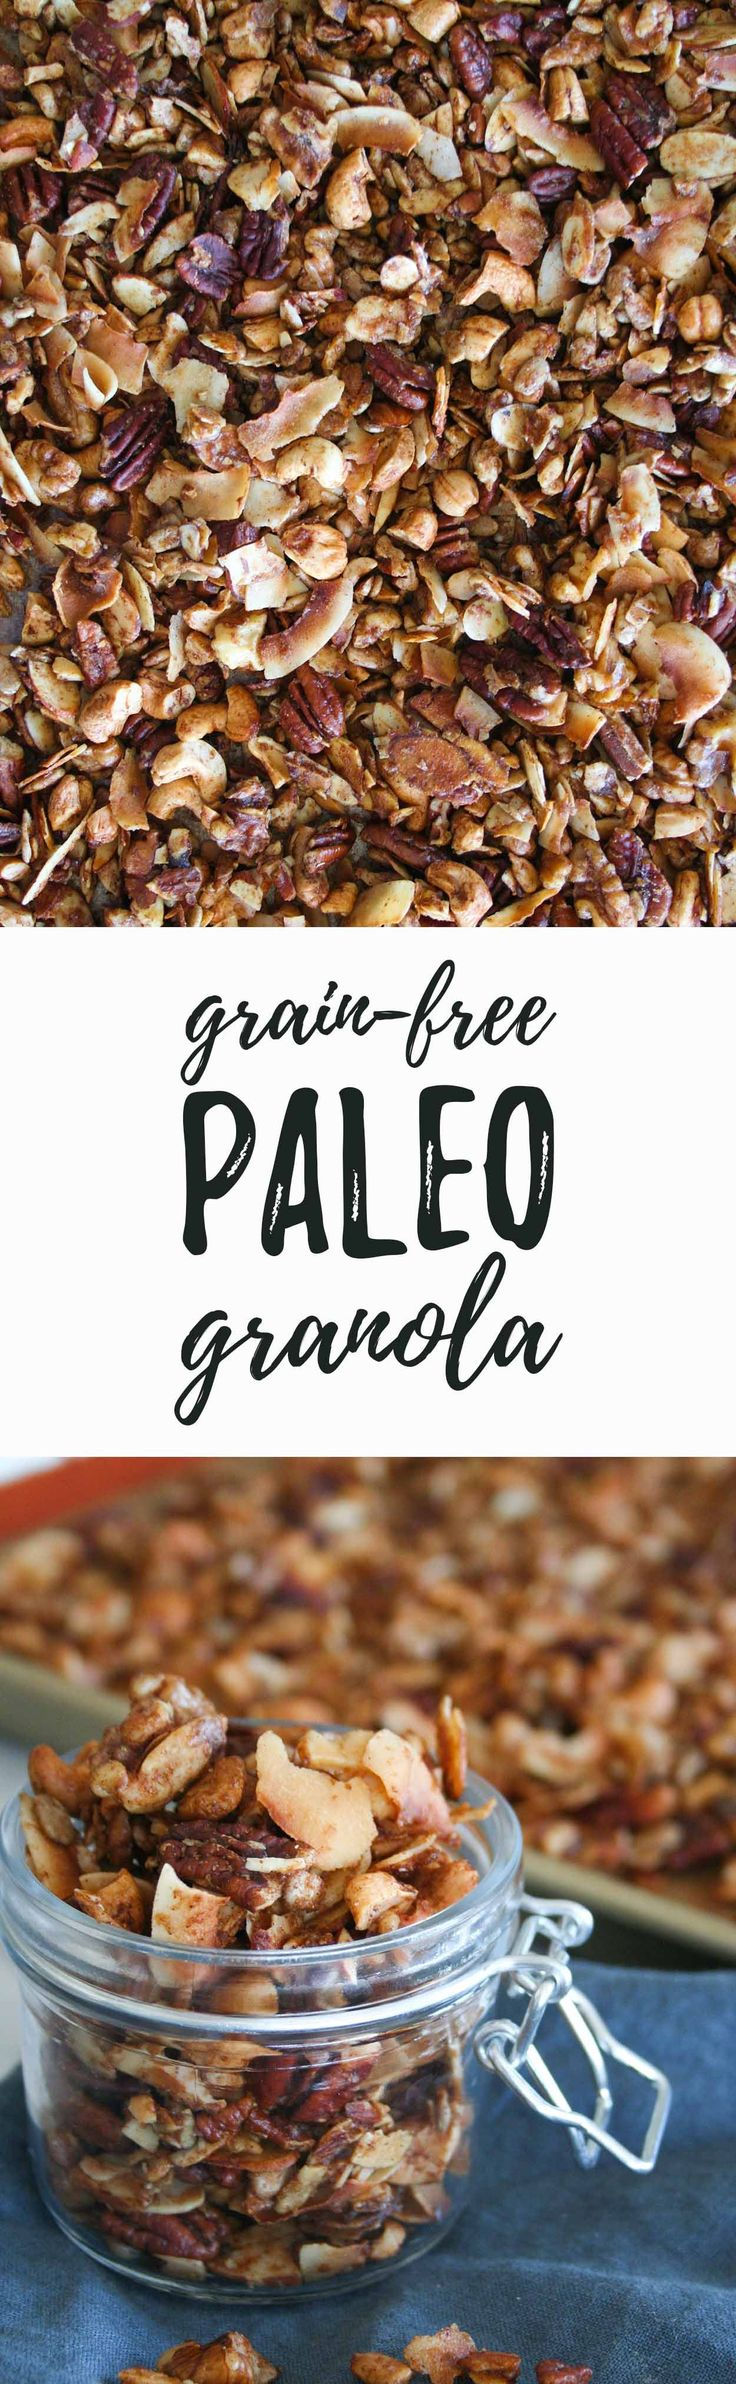 Grain Free Paleo Granola   recipe, healthy, coconut, simple, clean eating, maple syrup, gluten free, snack, breakfast   hungrybynature.com